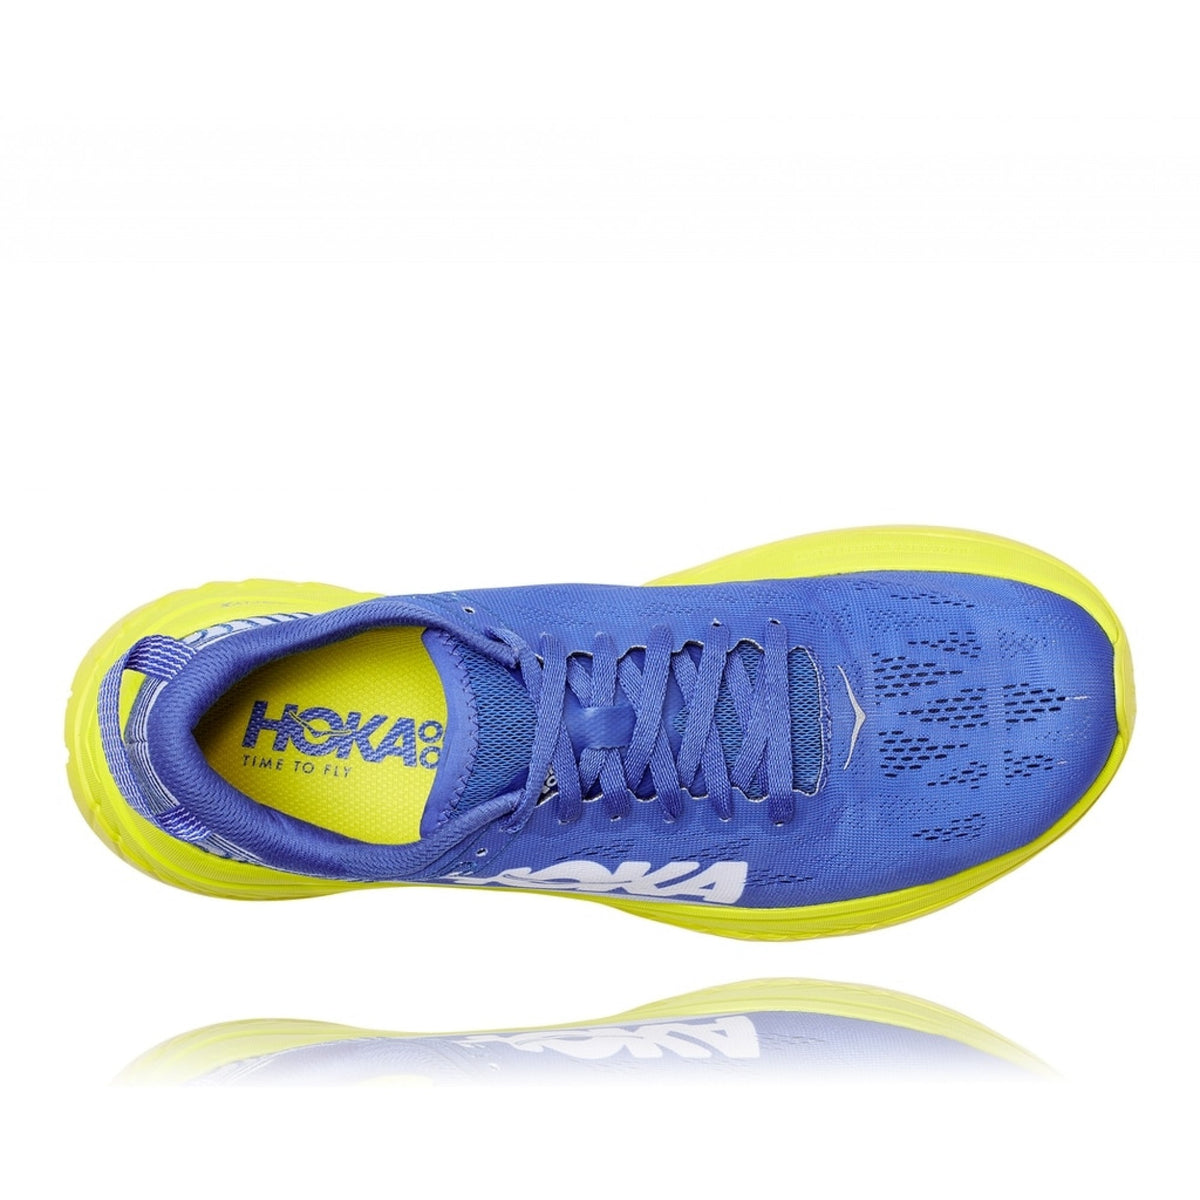 Hoka One One Carbon X Mens